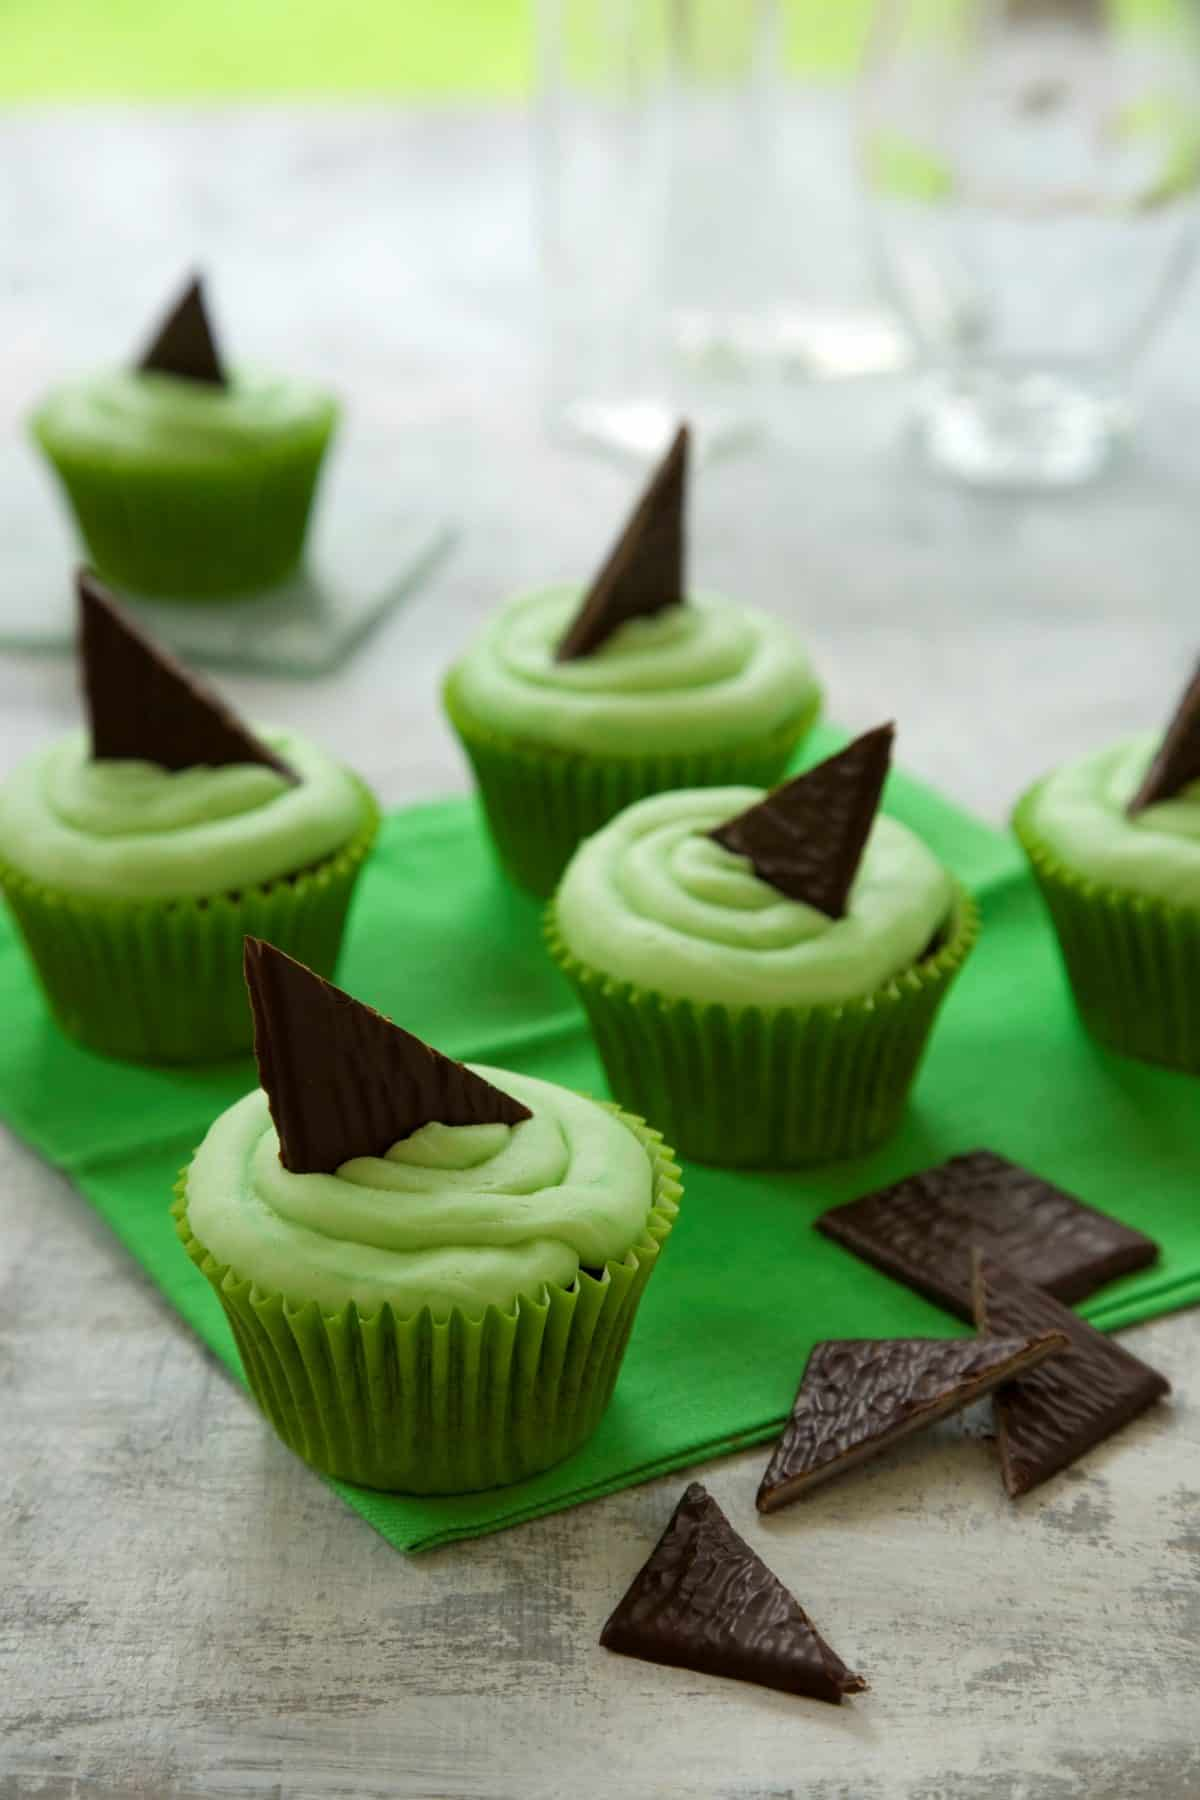 Alzheimer's Society Cupcake Day After Eight Cupcakes | Photo: Joy Skipper